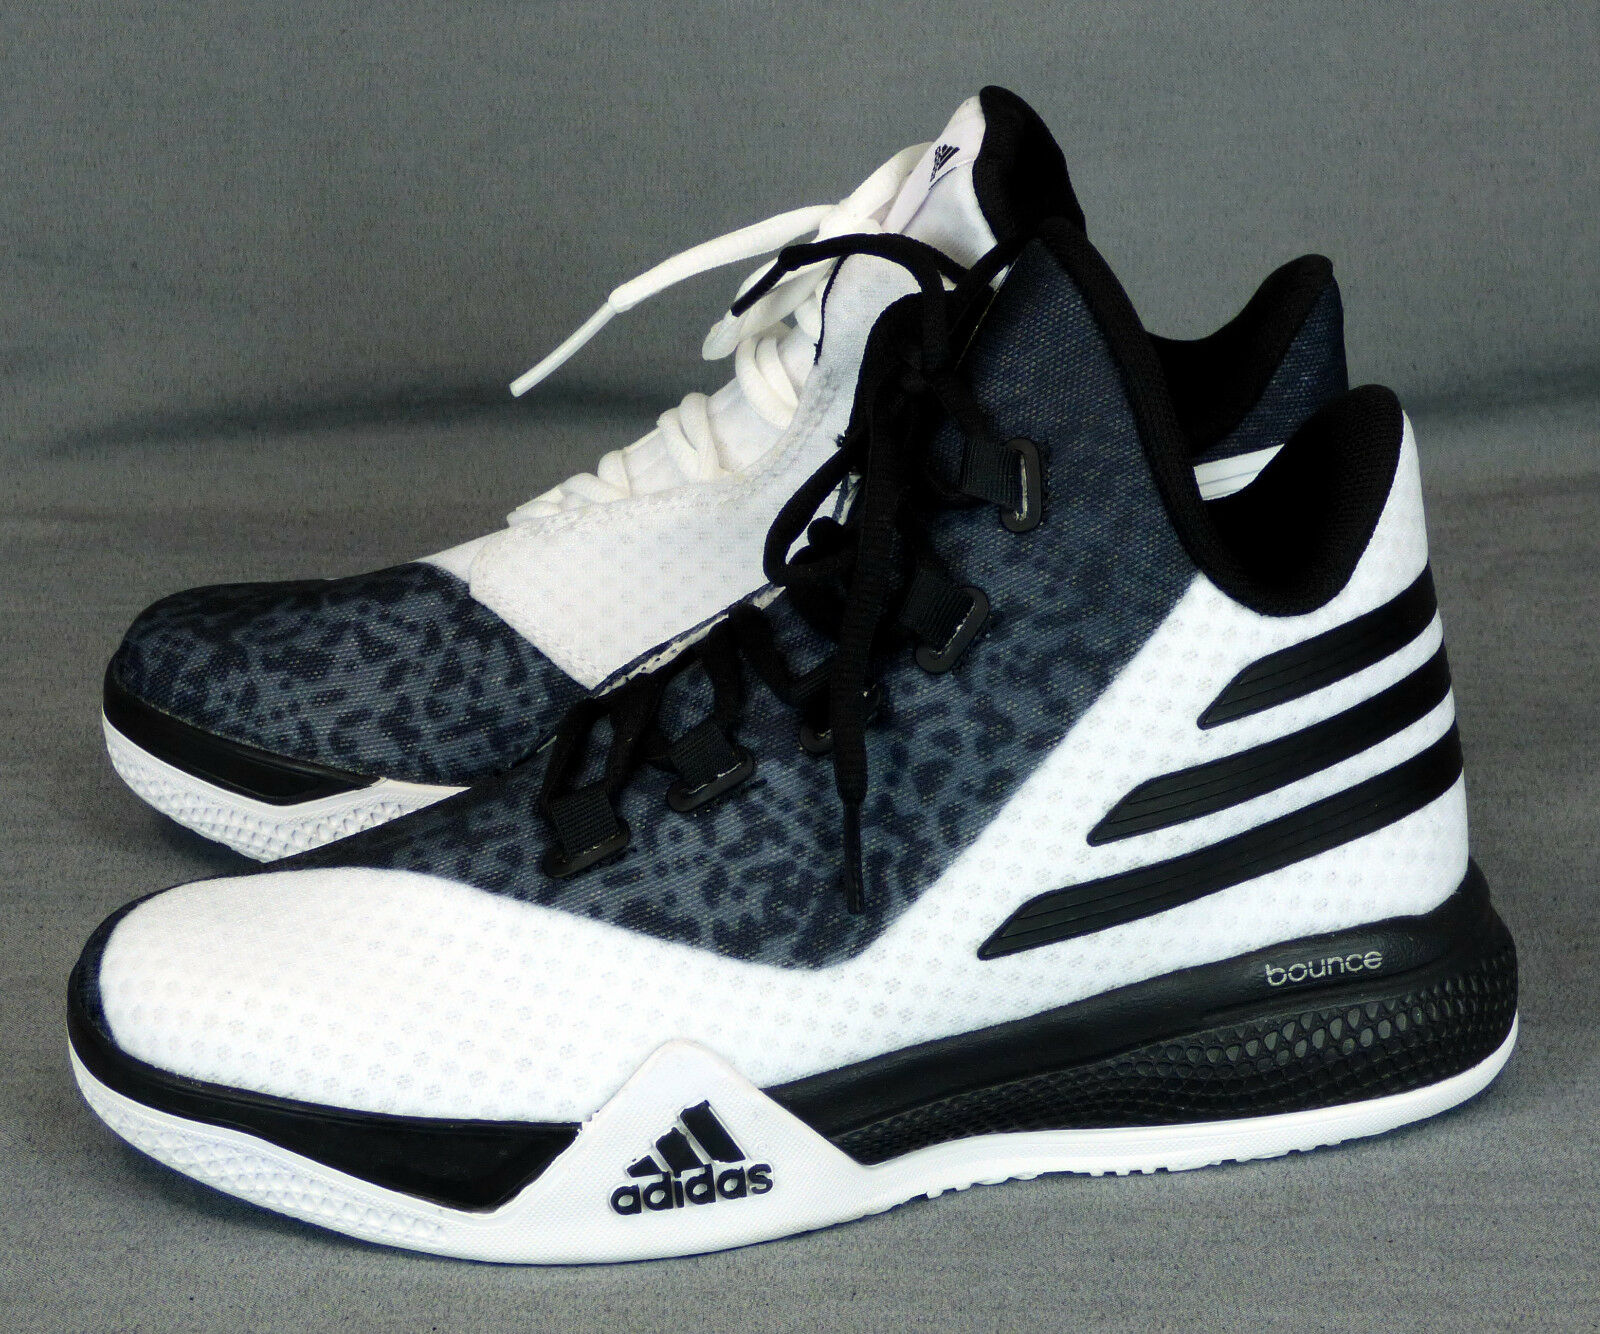 285 NWOB Adidas Bounce Ortholite men shoes athletic sneakers Ortholite Bounce black white NEW 5.5 56b7b4